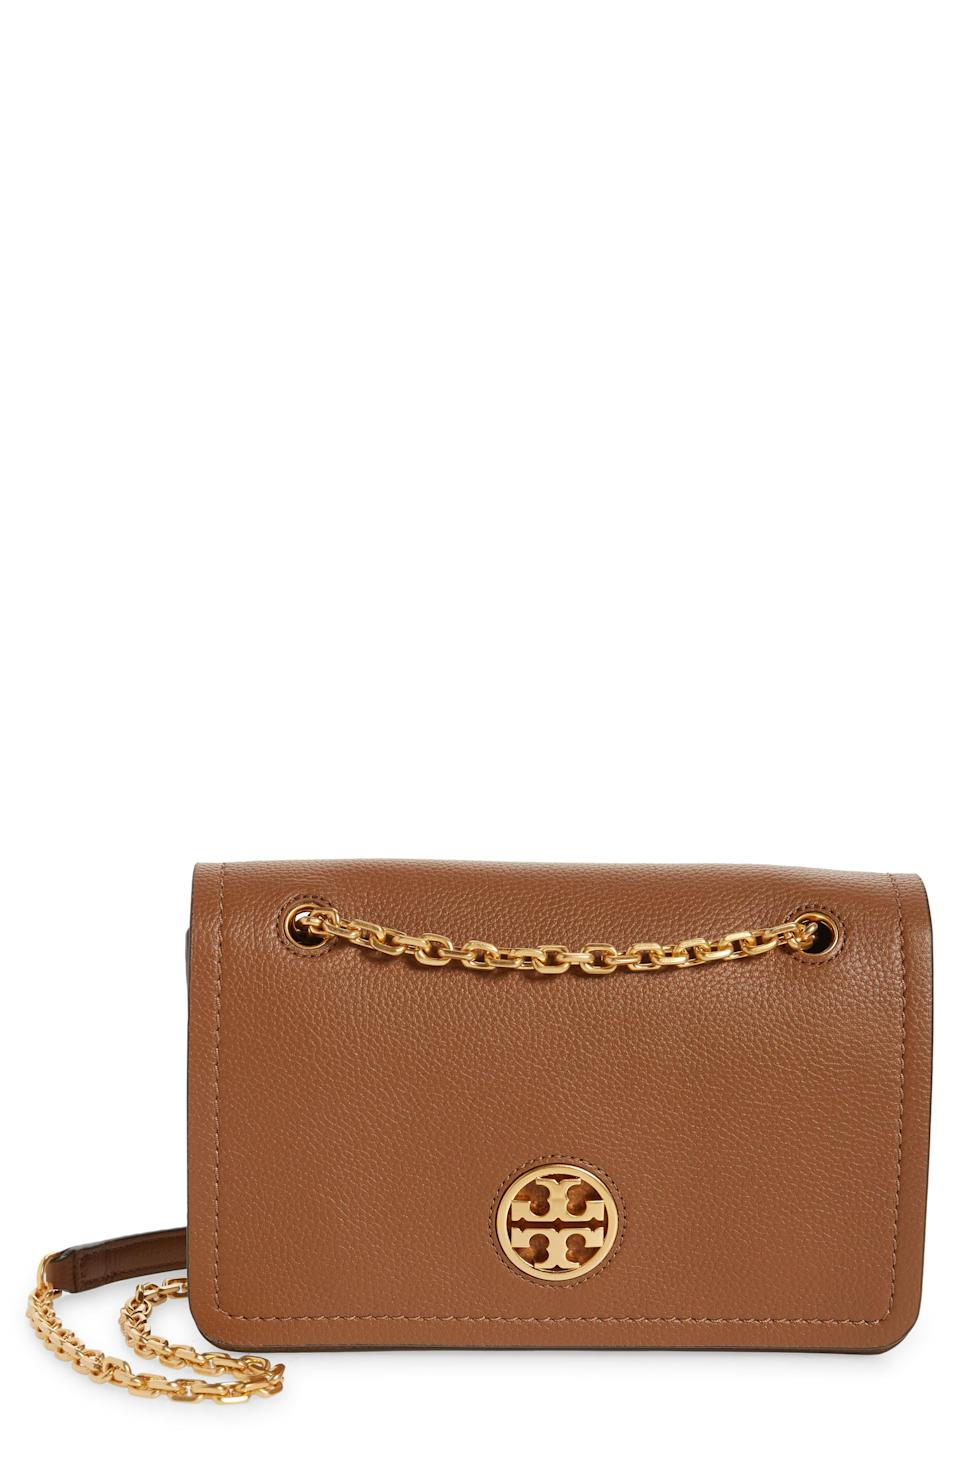 """<p><strong>Tory Burch</strong></p><p>nordstrom.com</p><p><a href=""""https://go.redirectingat.com?id=74968X1596630&url=https%3A%2F%2Fwww.nordstrom.com%2Fs%2Ftory-burch-carson-convertible-leather-crossbody-bag%2F5609951&sref=https%3A%2F%2Fwww.elle.com%2Ffashion%2Fshopping%2Fg33444637%2Fnordstrom-anniversary-sale-2020%2F"""" rel=""""nofollow noopener"""" target=""""_blank"""" data-ylk=""""slk:Shop Now"""" class=""""link rapid-noclick-resp"""">Shop Now</a></p><p><del>$498</del></p><p><strong>$299.90</strong></p>"""